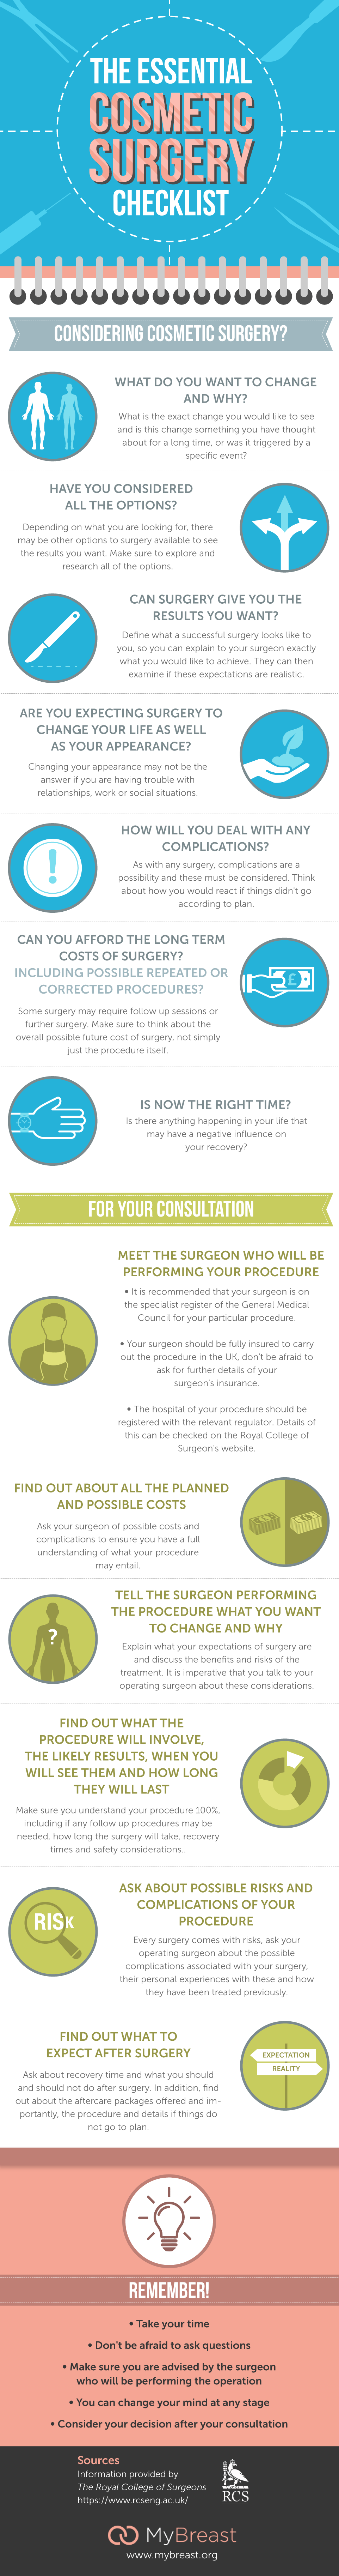 The Essential Cosmetic Surgery Checklist